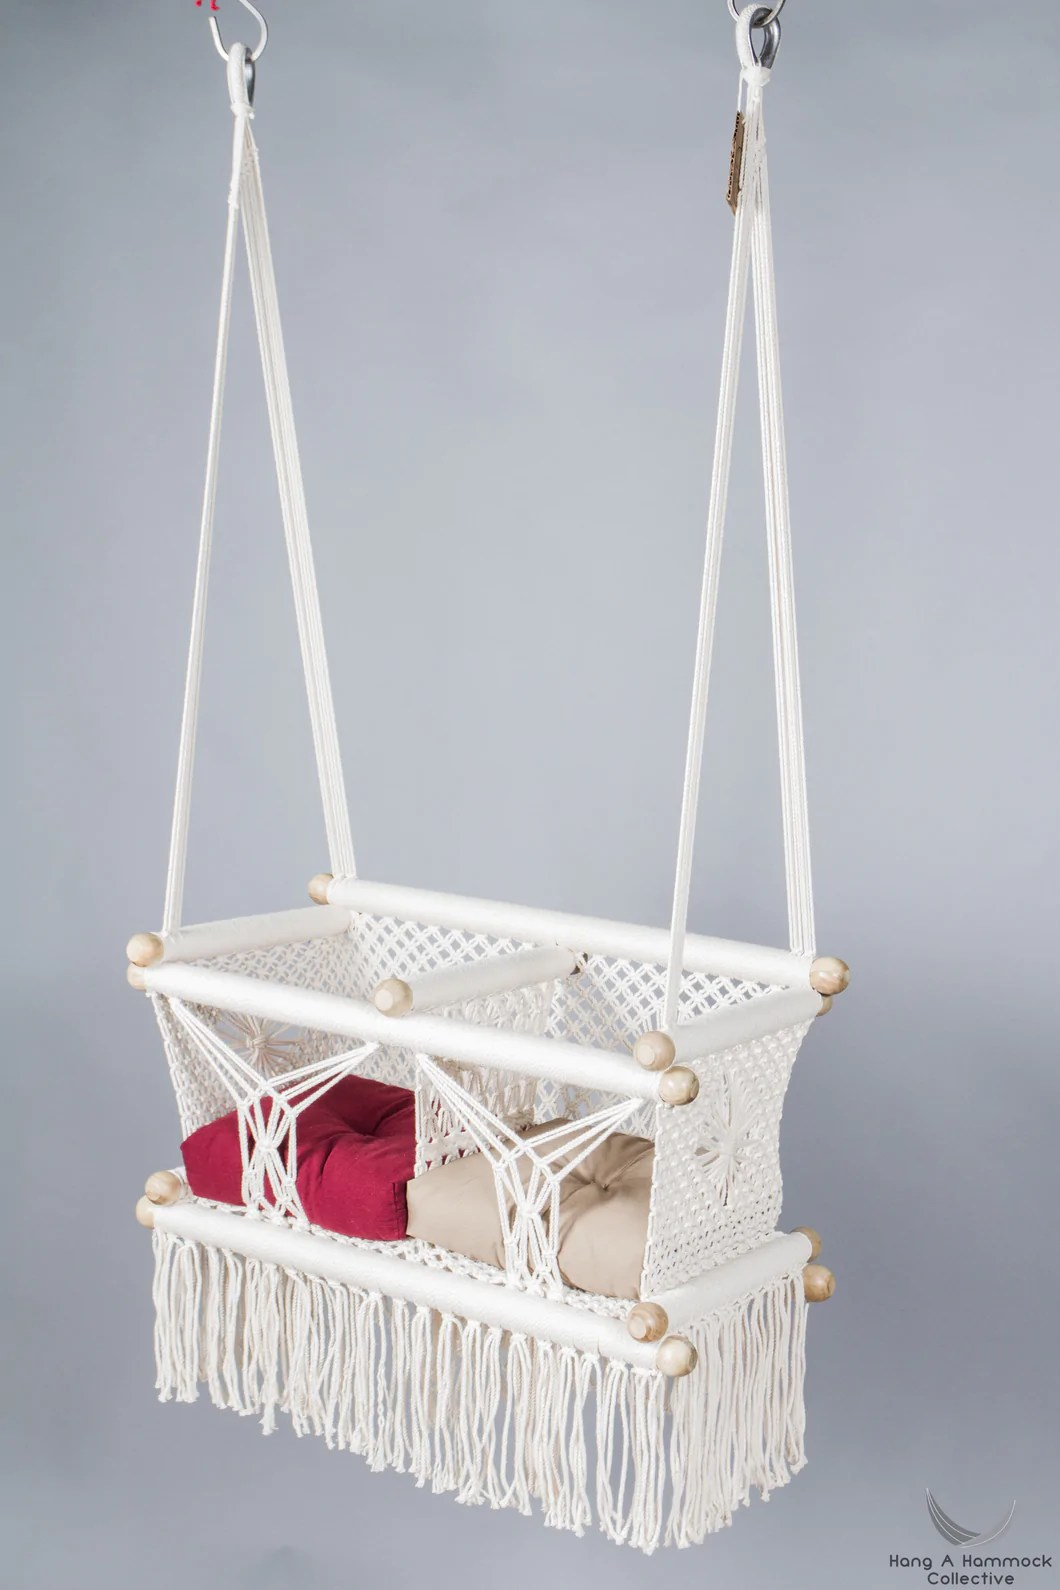 hanging chair for baby alps mountaineering leisure swing in macrame hangahammockcollective twins two points ivory color catalog photo